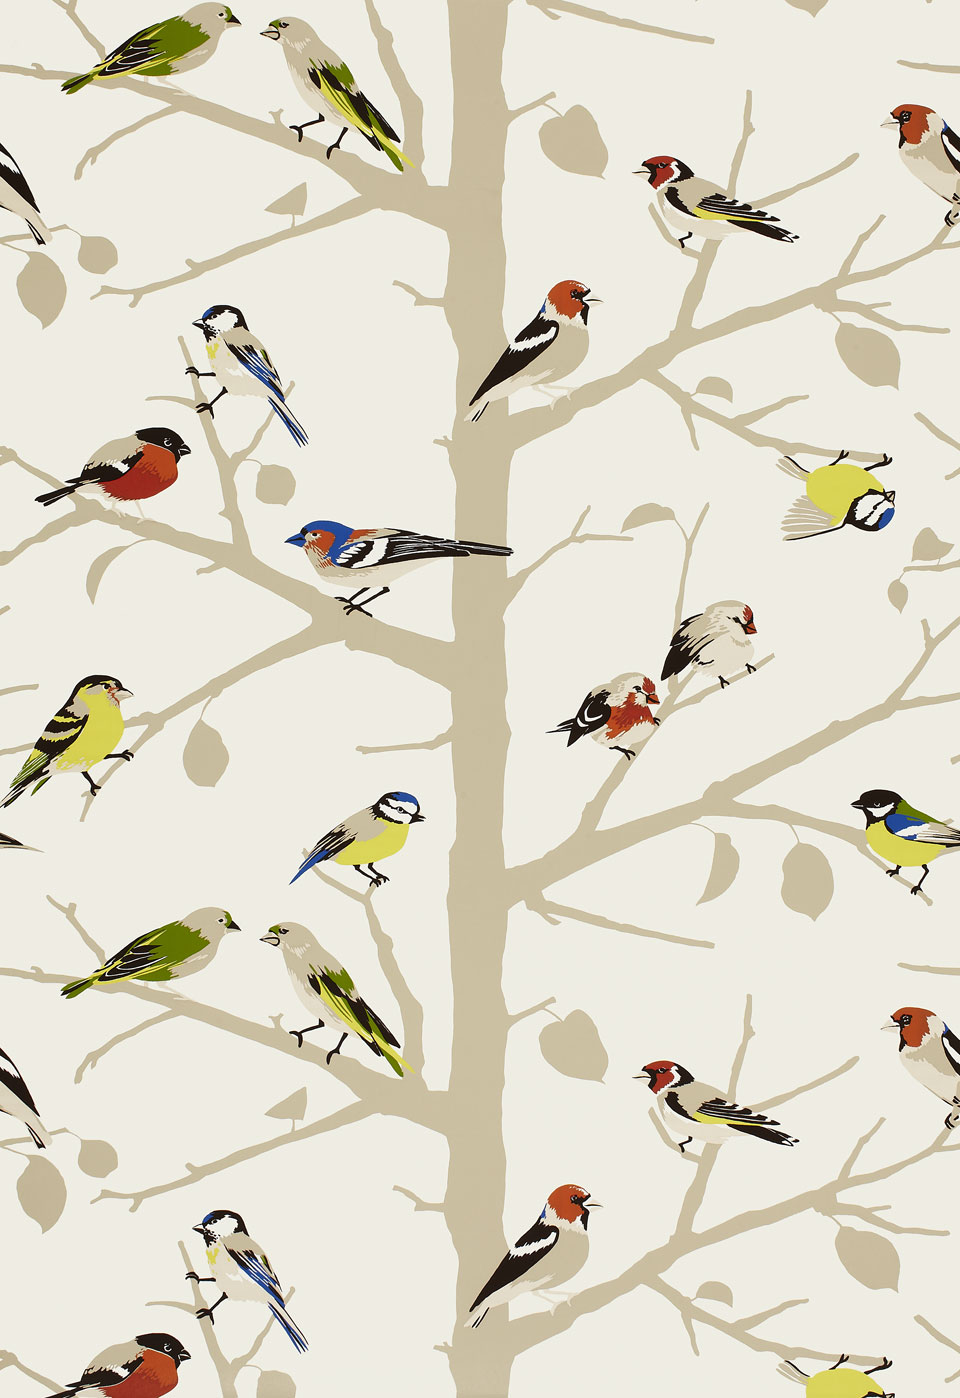 Wallpaper Designs With Birds : Sasha s inspirations patterns of fun